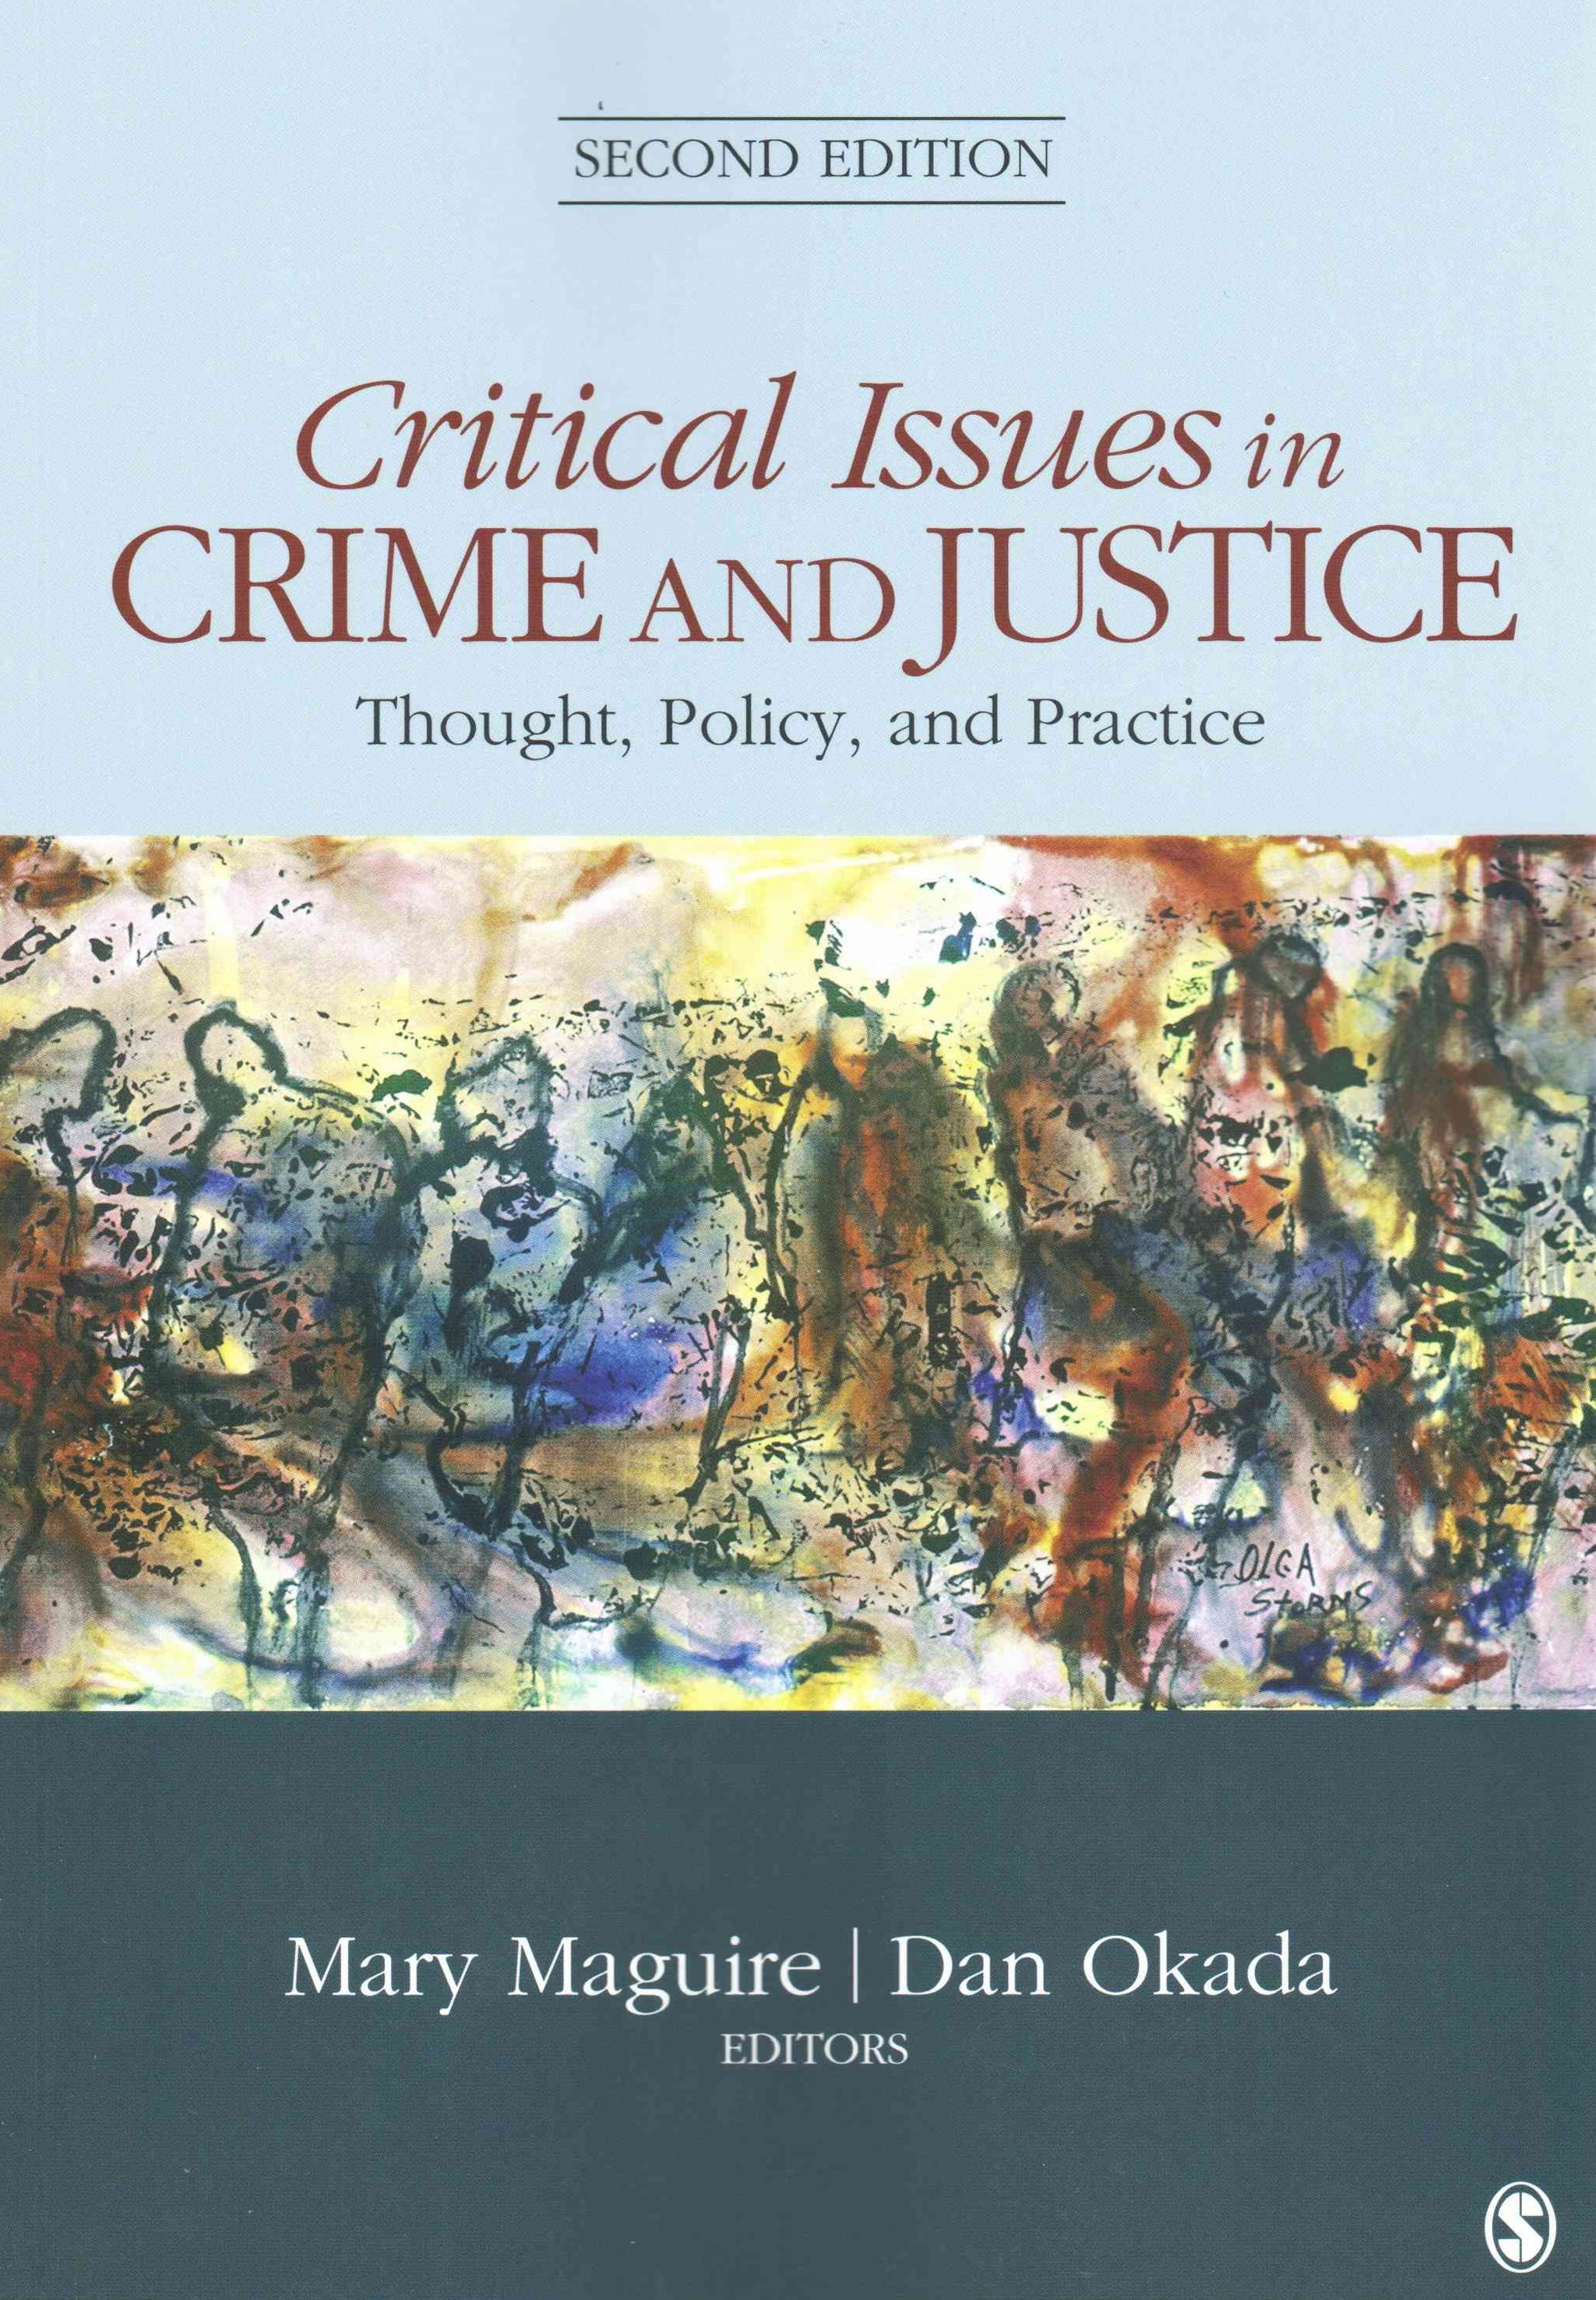 Critical Issues in Crime and Justice